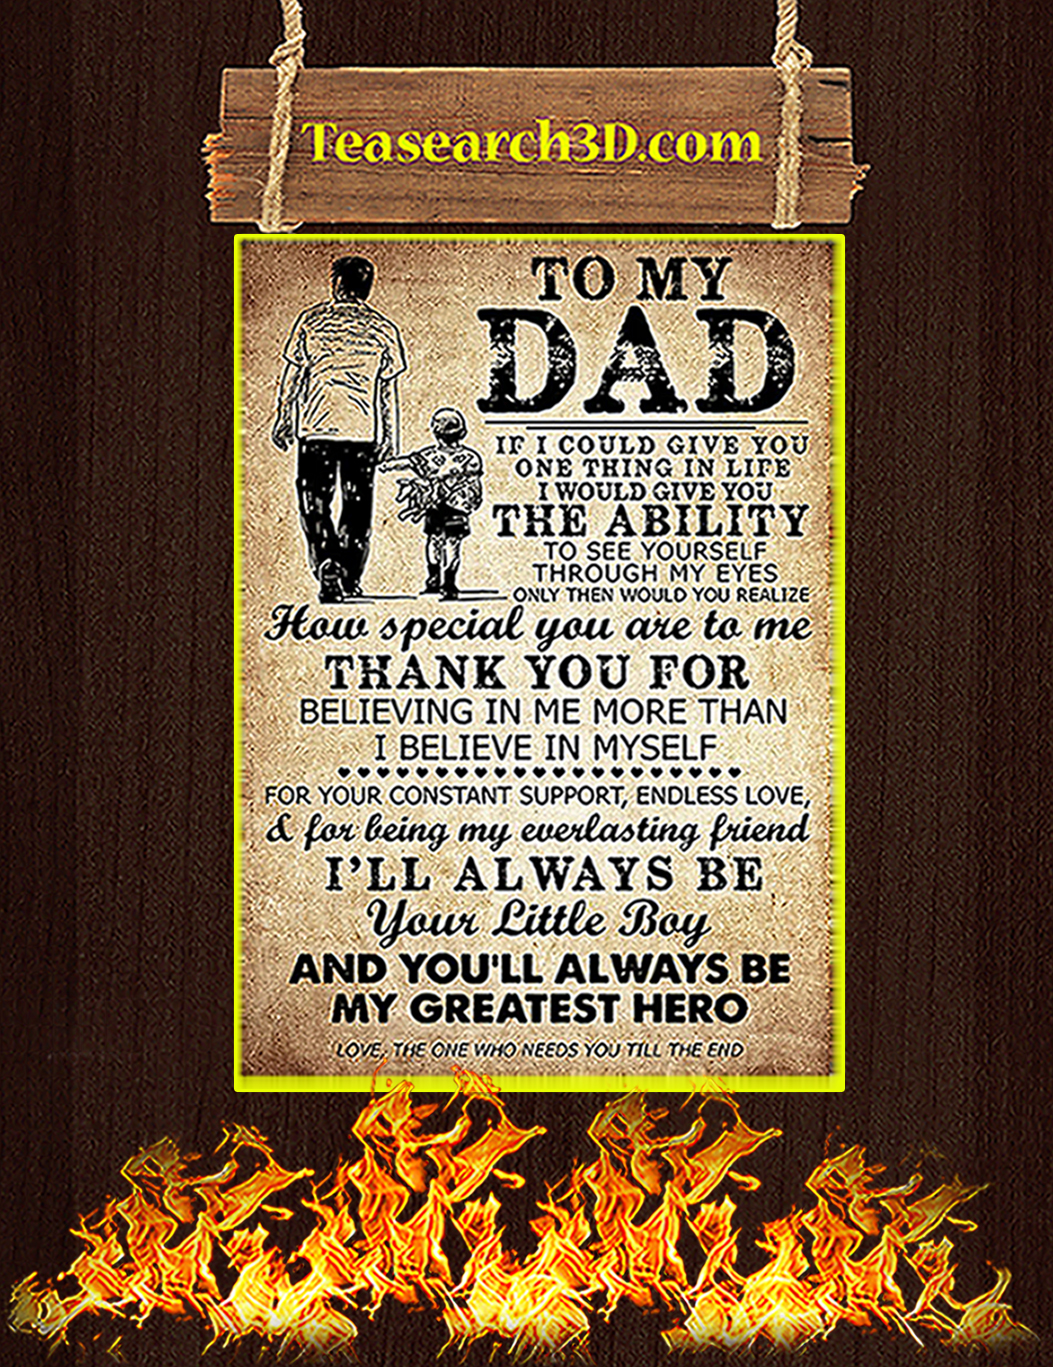 To my dad if i could give you one thing in life poster A1